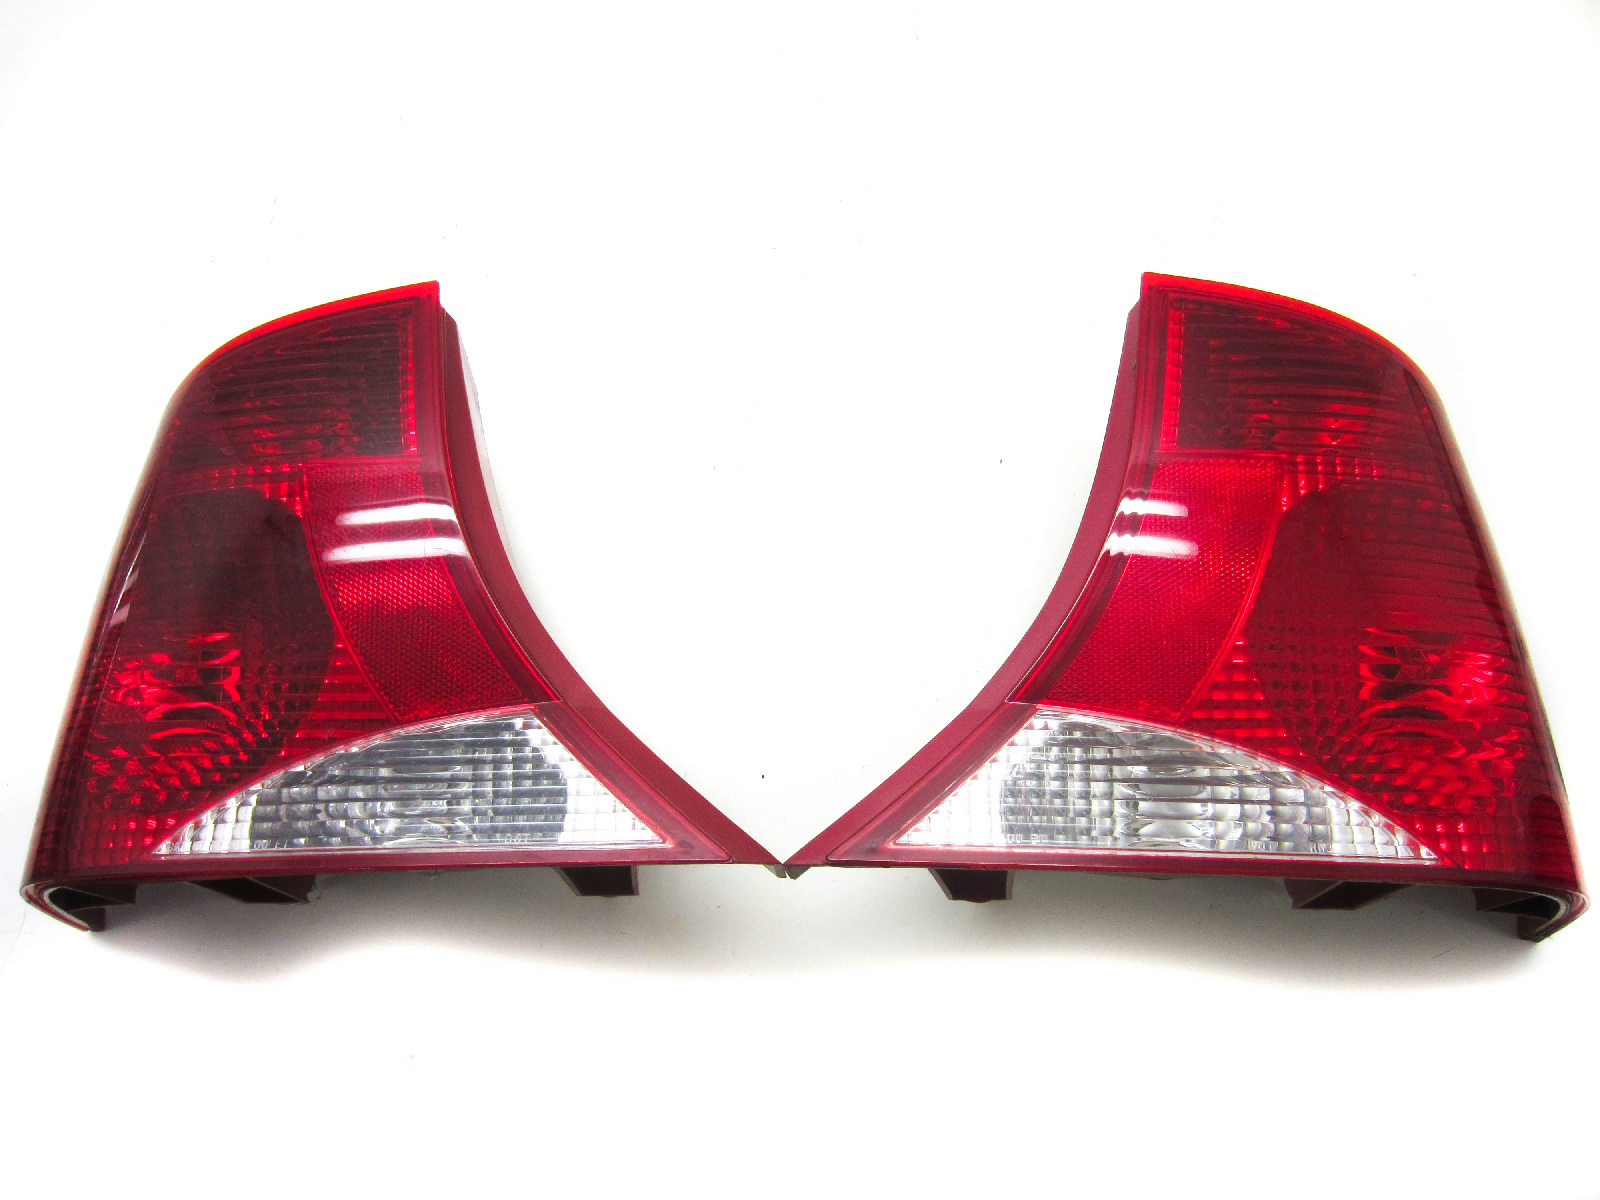 Details About For 00 03 Ford Focus Tail Light Lamp Pair Left And Right Set